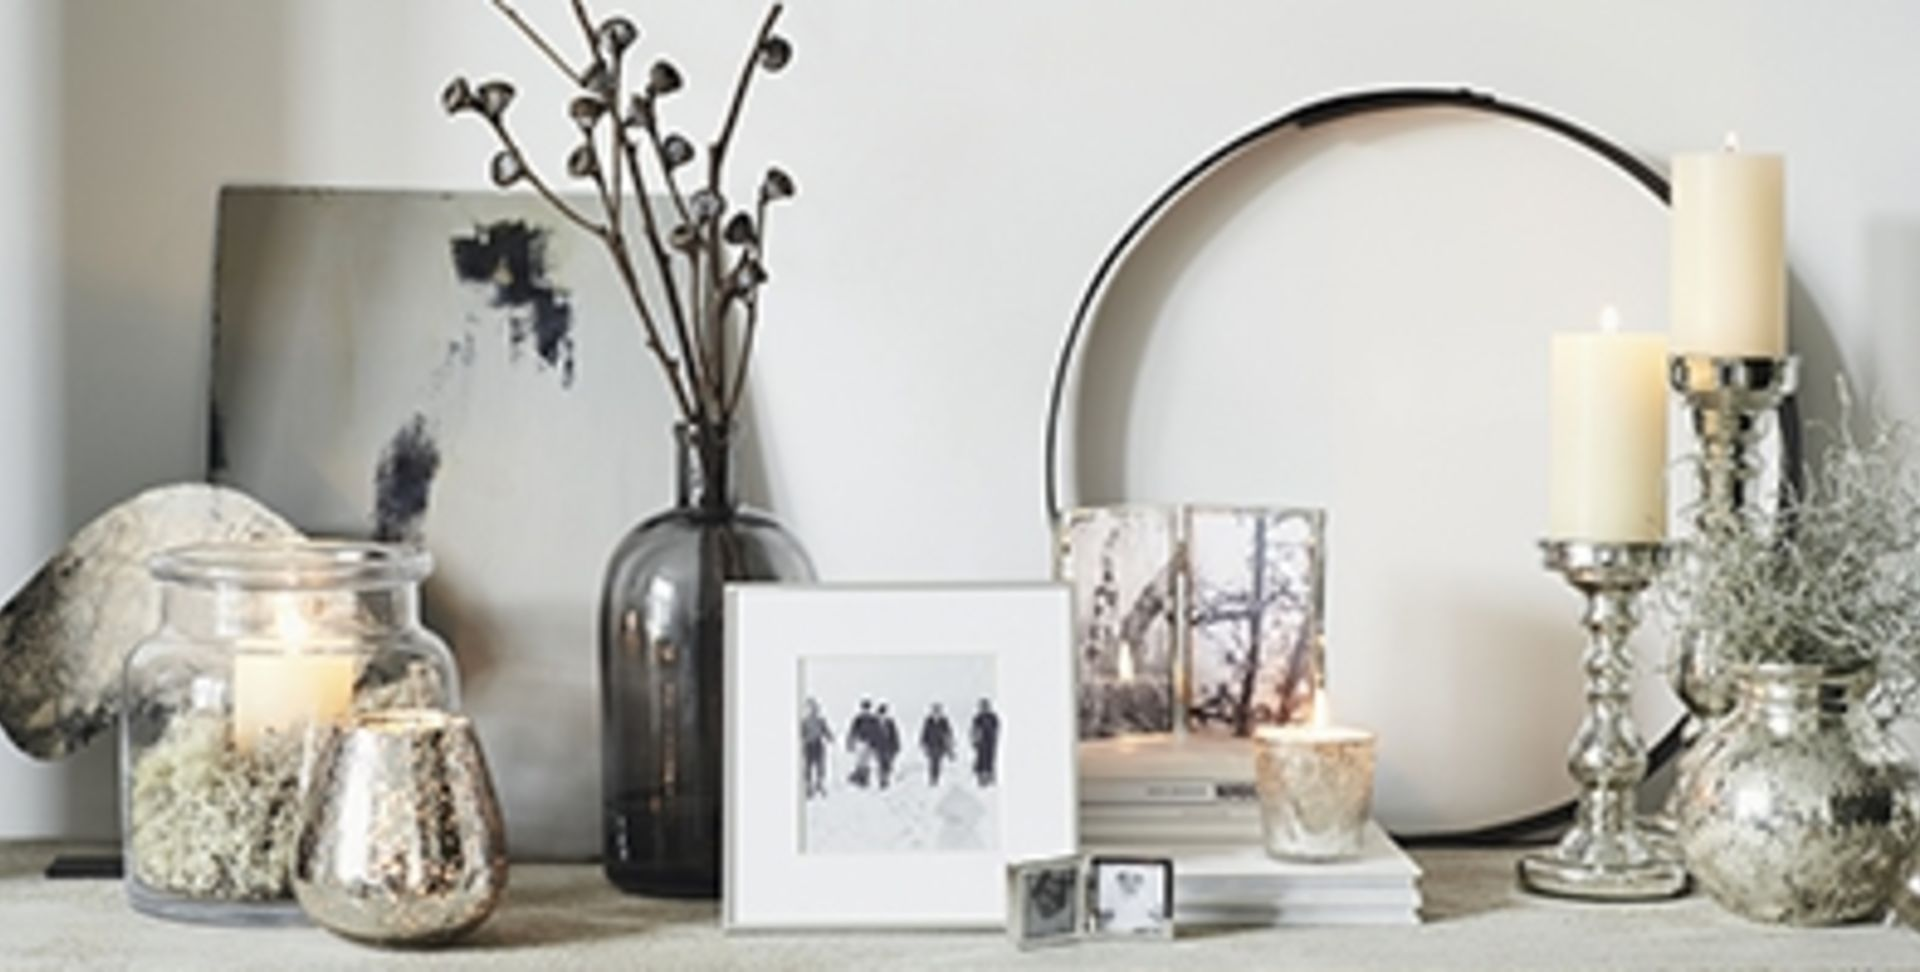 12 Gifts Ideas For The Home